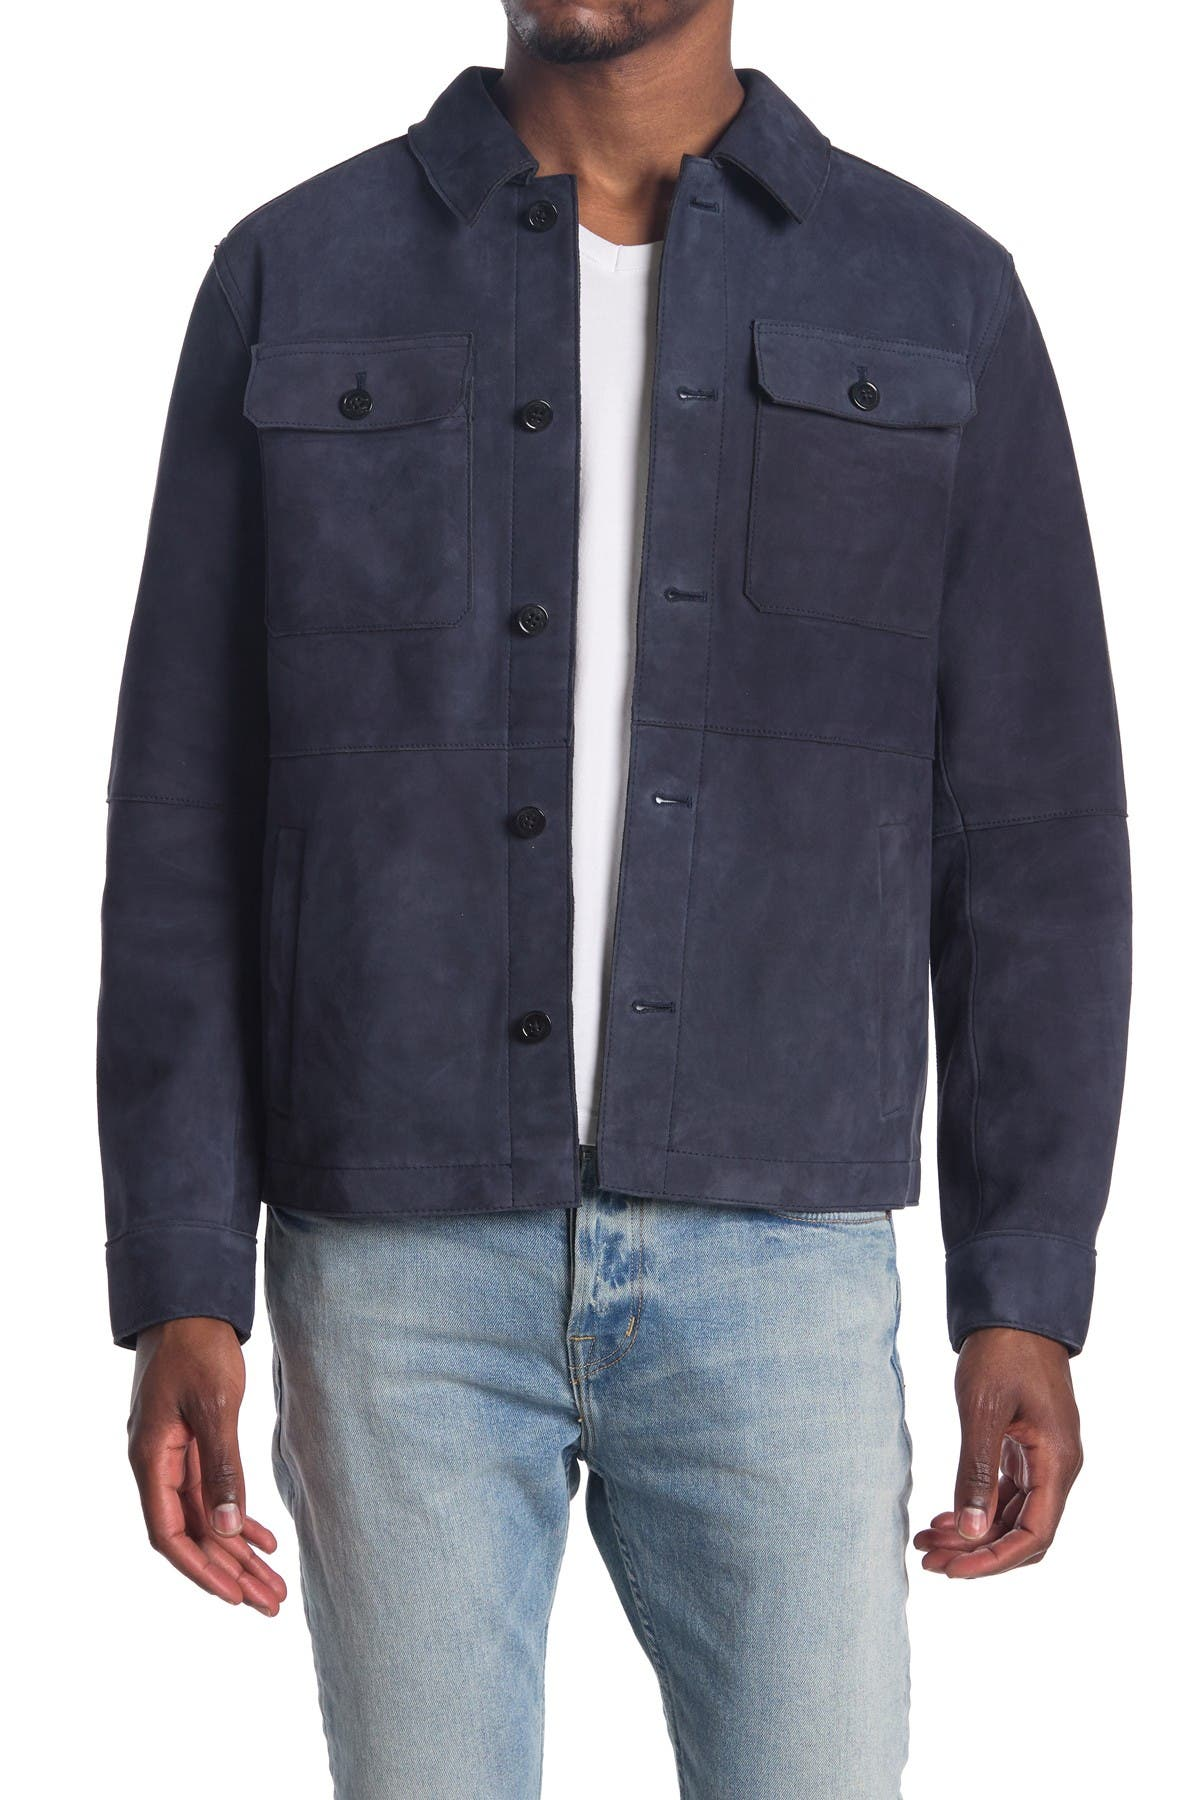 Image of Michael Kors Suede Shirt Jacket